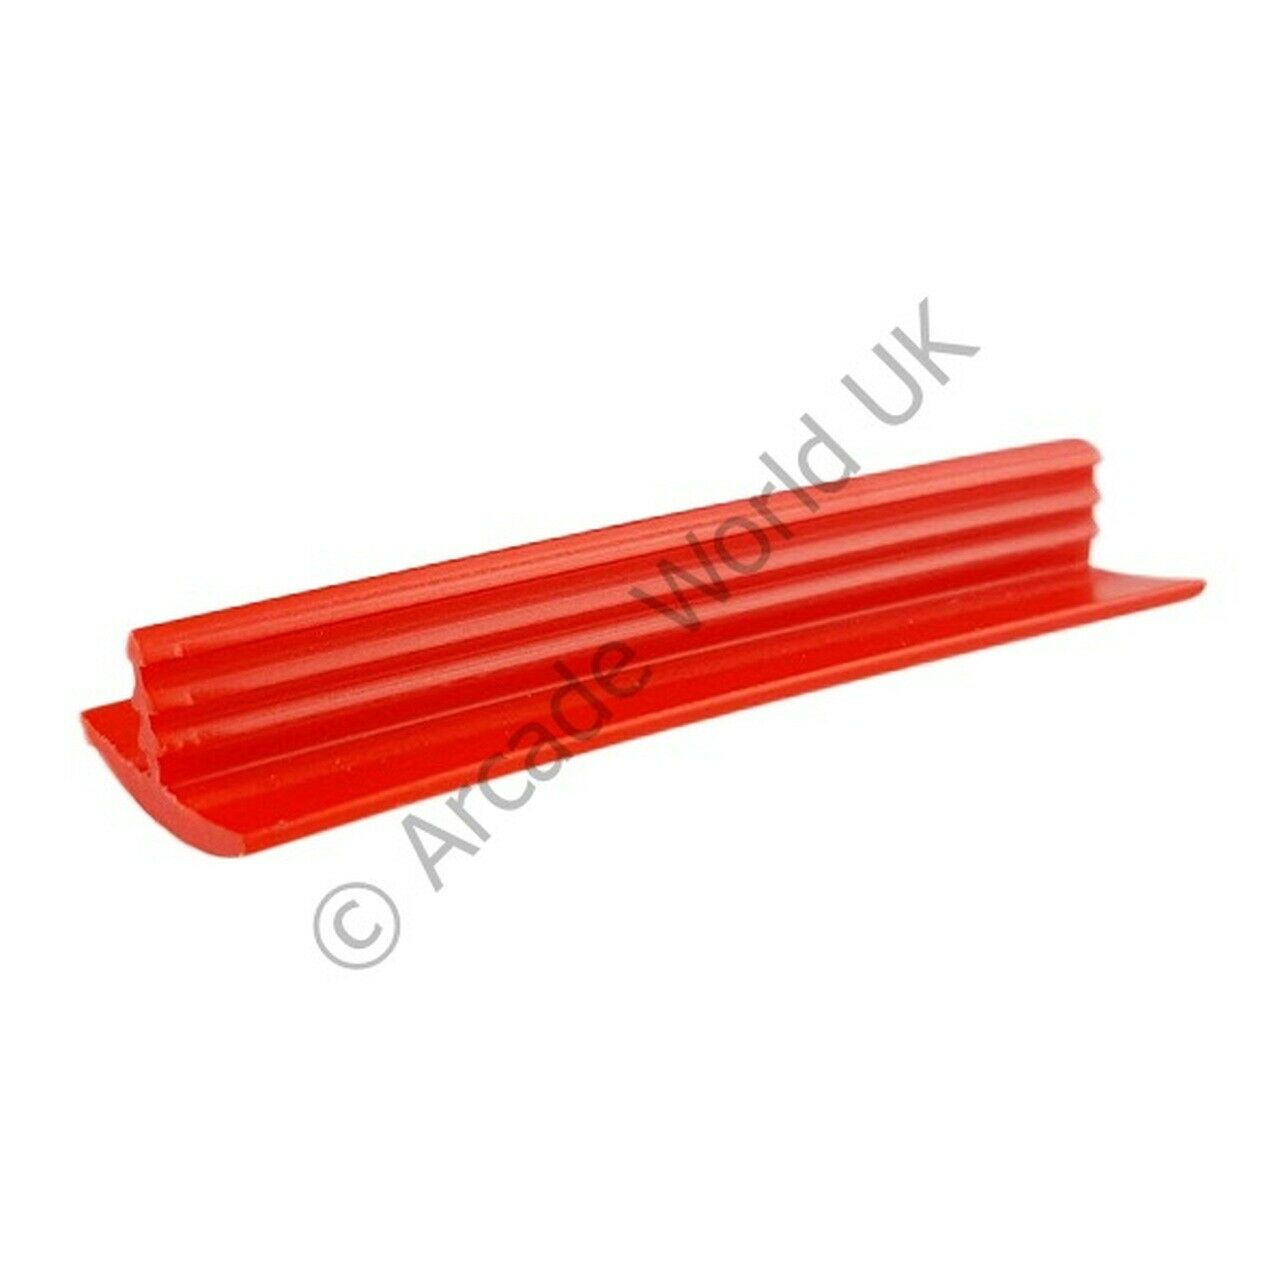 Bright Red T-Molding 5/8